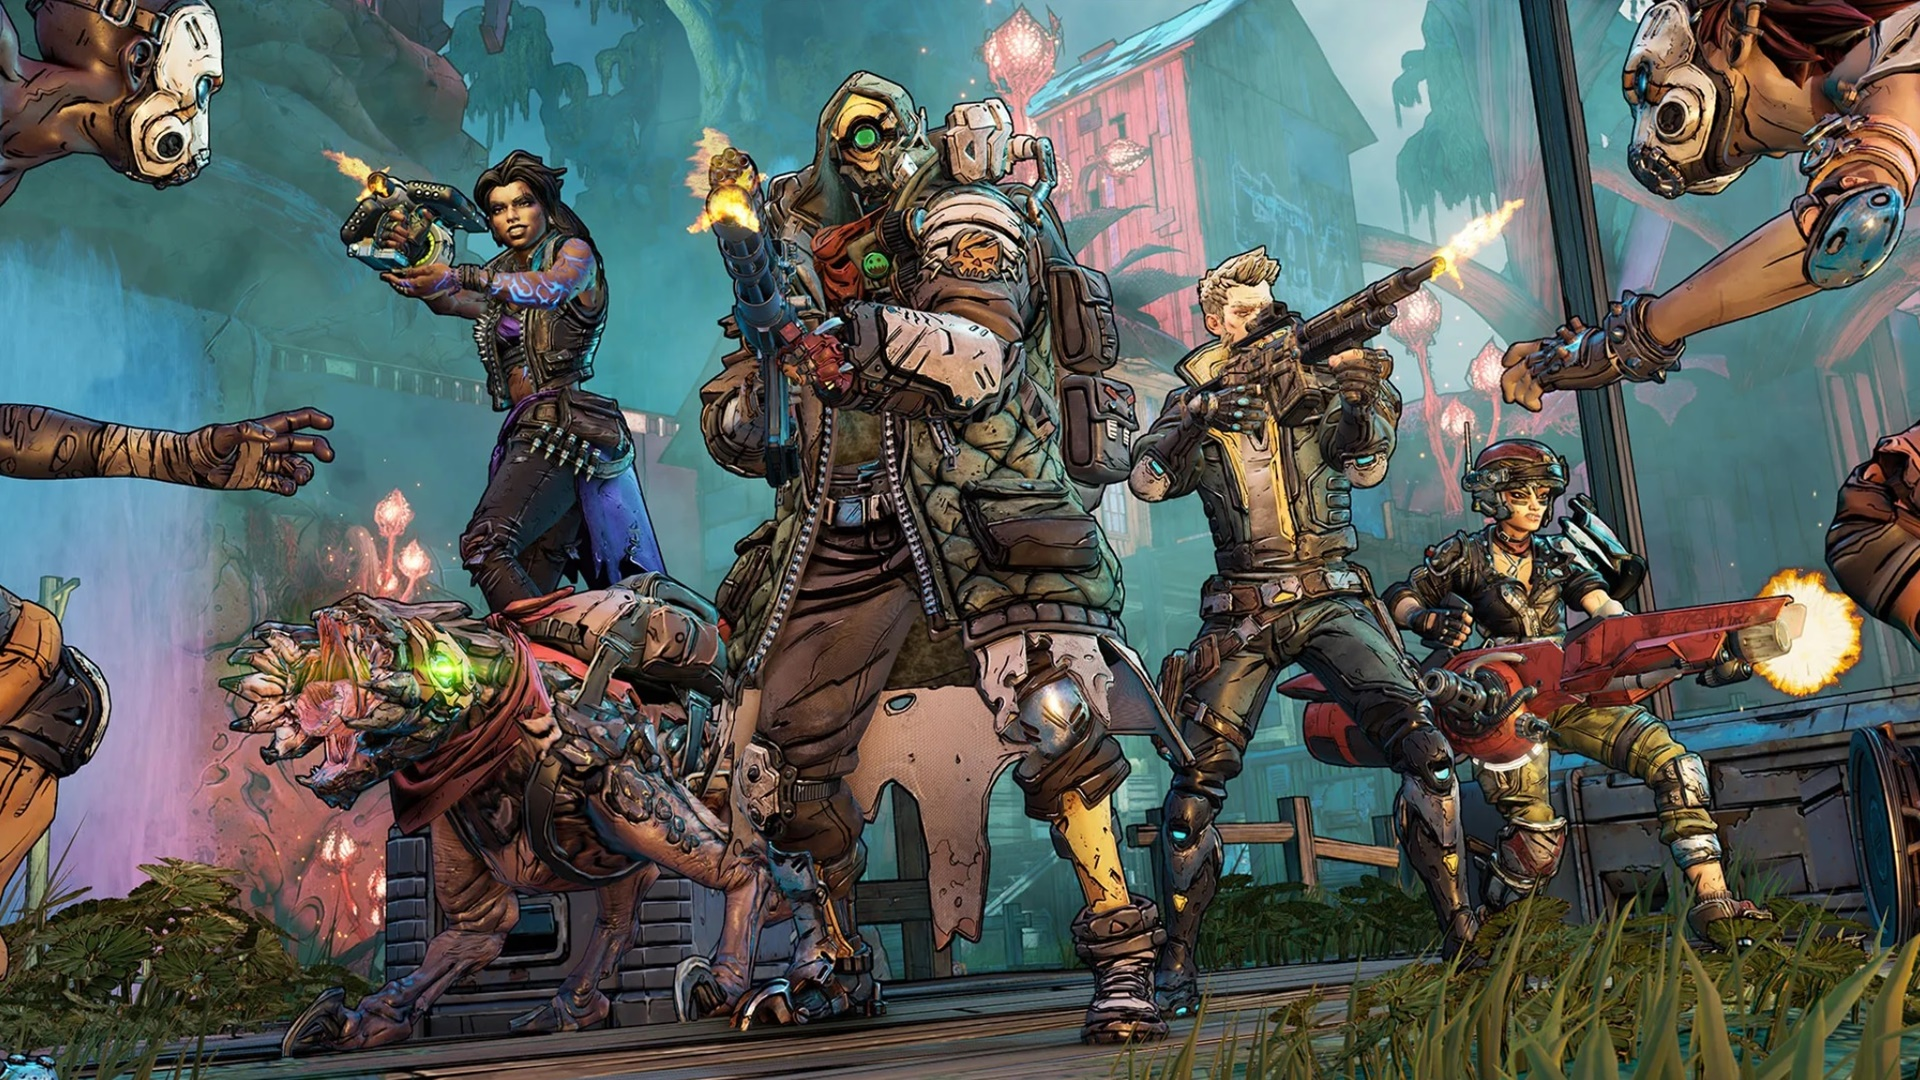 Borderlands 3 endgame: what to expect after the credits roll